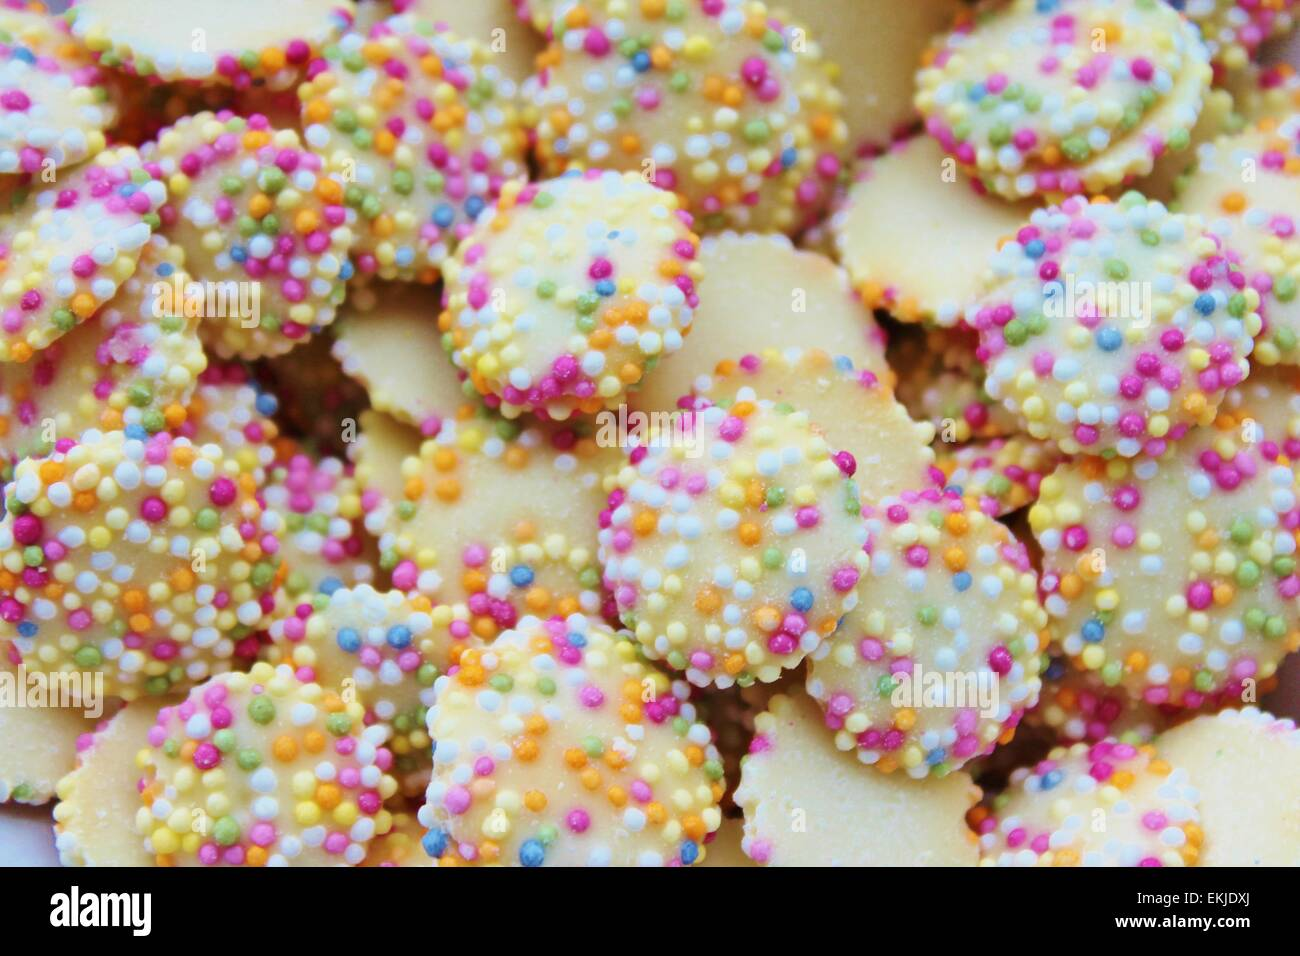 nonpareils candy sprinkles